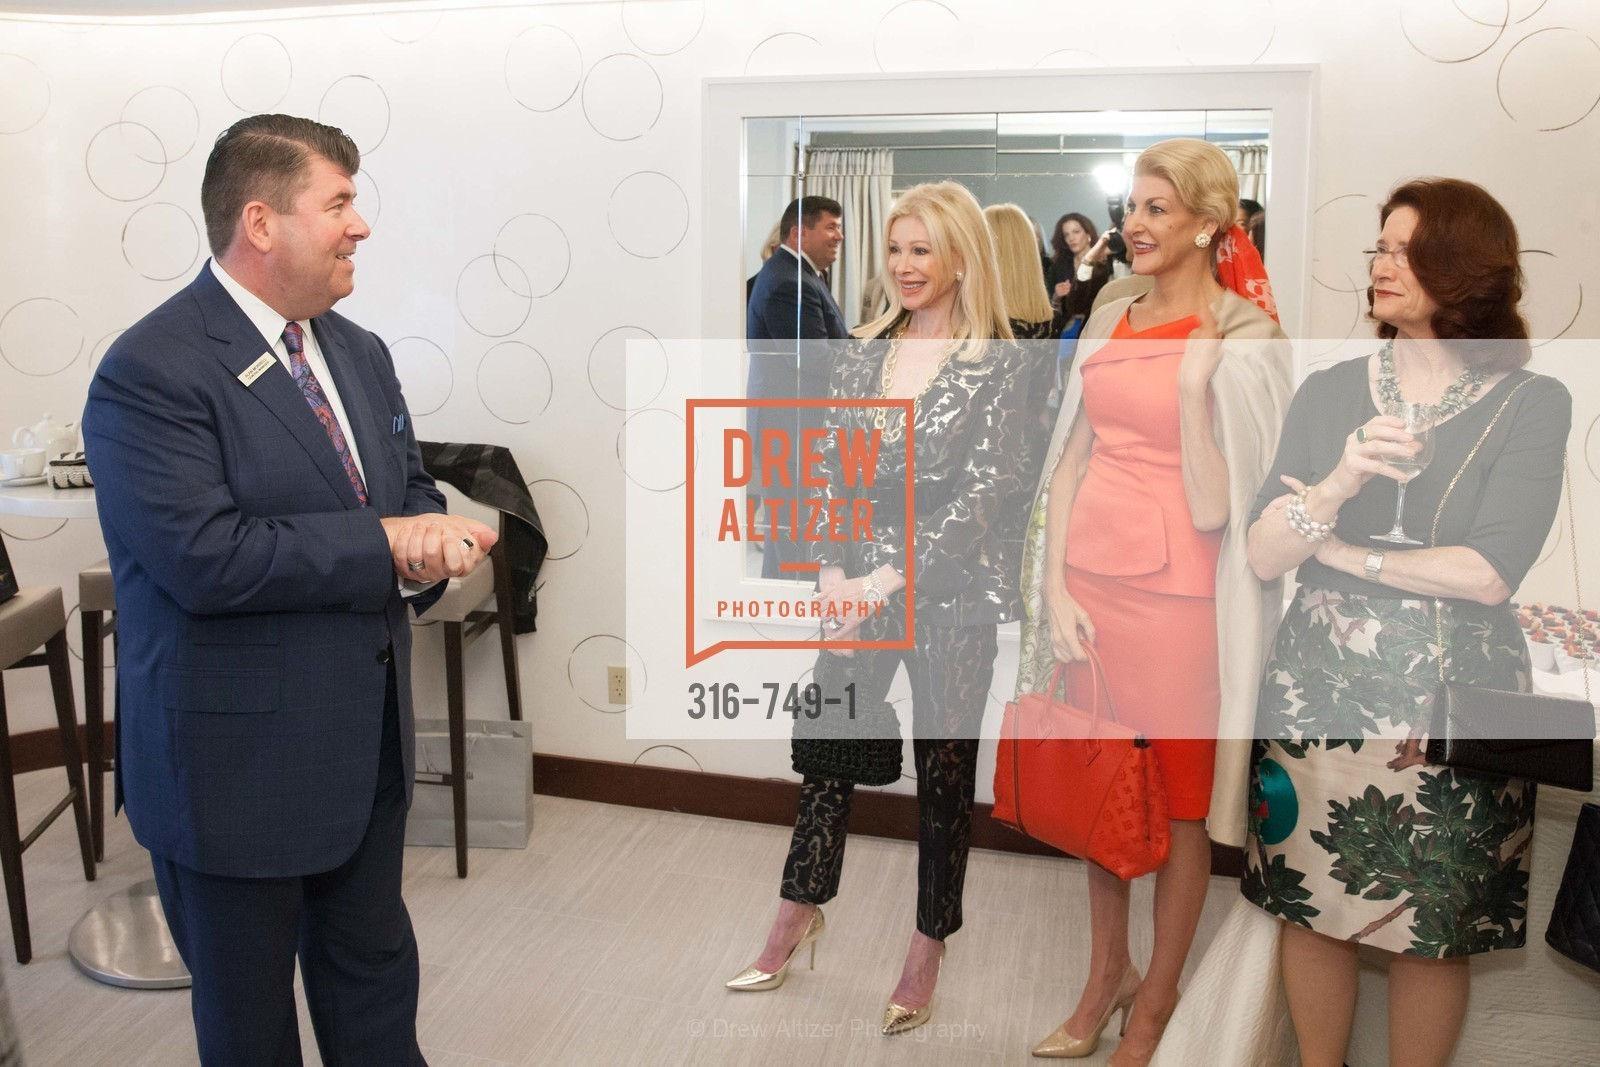 Alan Morrell, Pamala Deikel, Karen Caldwell, Cynthia Woods, PETER COPPING Meets and Greets OSCAR DELA RENTA Clients and Associates at NEIMAN MARCUS, US, May 23rd, 2015,Drew Altizer, Drew Altizer Photography, full-service agency, private events, San Francisco photographer, photographer california